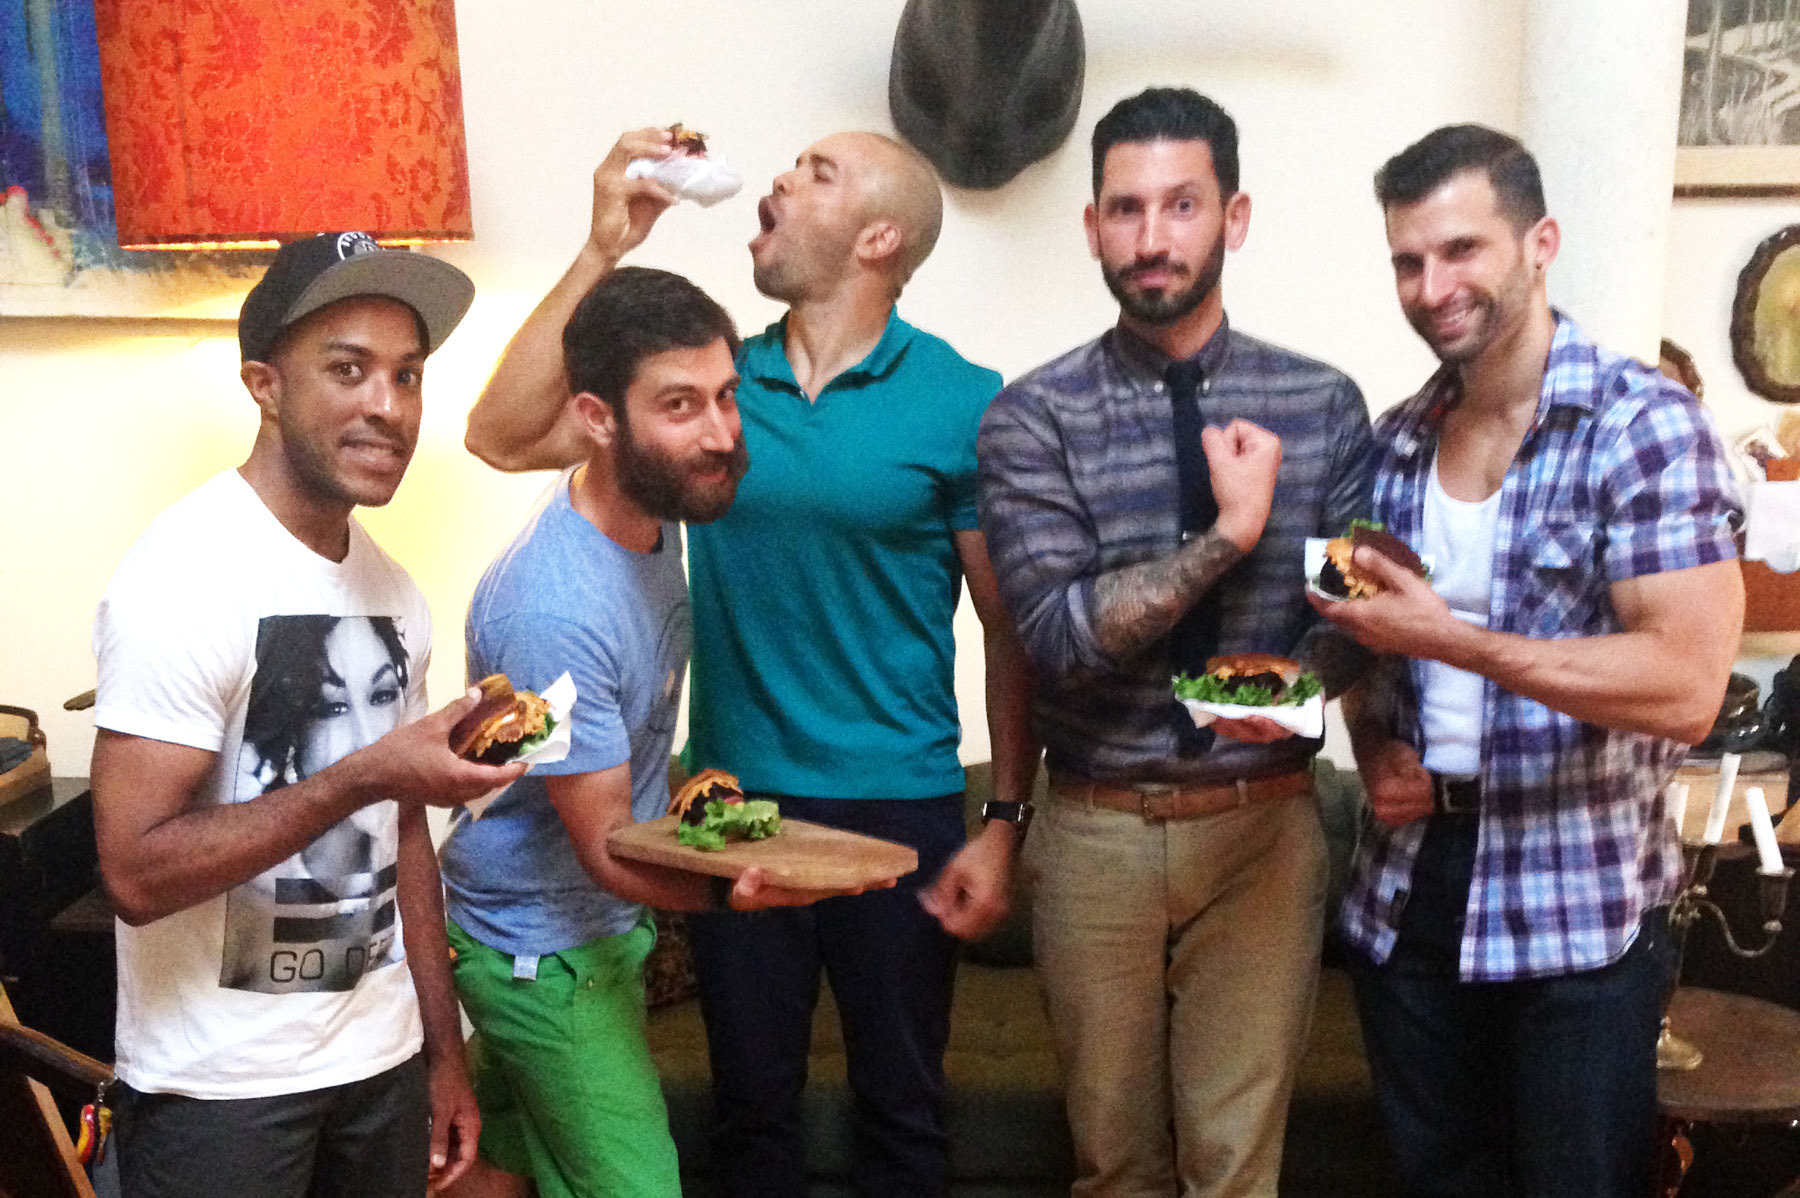 Mixed martial arts fighter Cornell Ward (from left), chef Daniel Strong, triathlete Dominic Thompson, lifestyle blogger Joshua Katcher and competitive bodybuilder Giacomo Marchese at a vegan barbecue in Brooklyn, N.Y. Photo: Courtesy of James Koroni